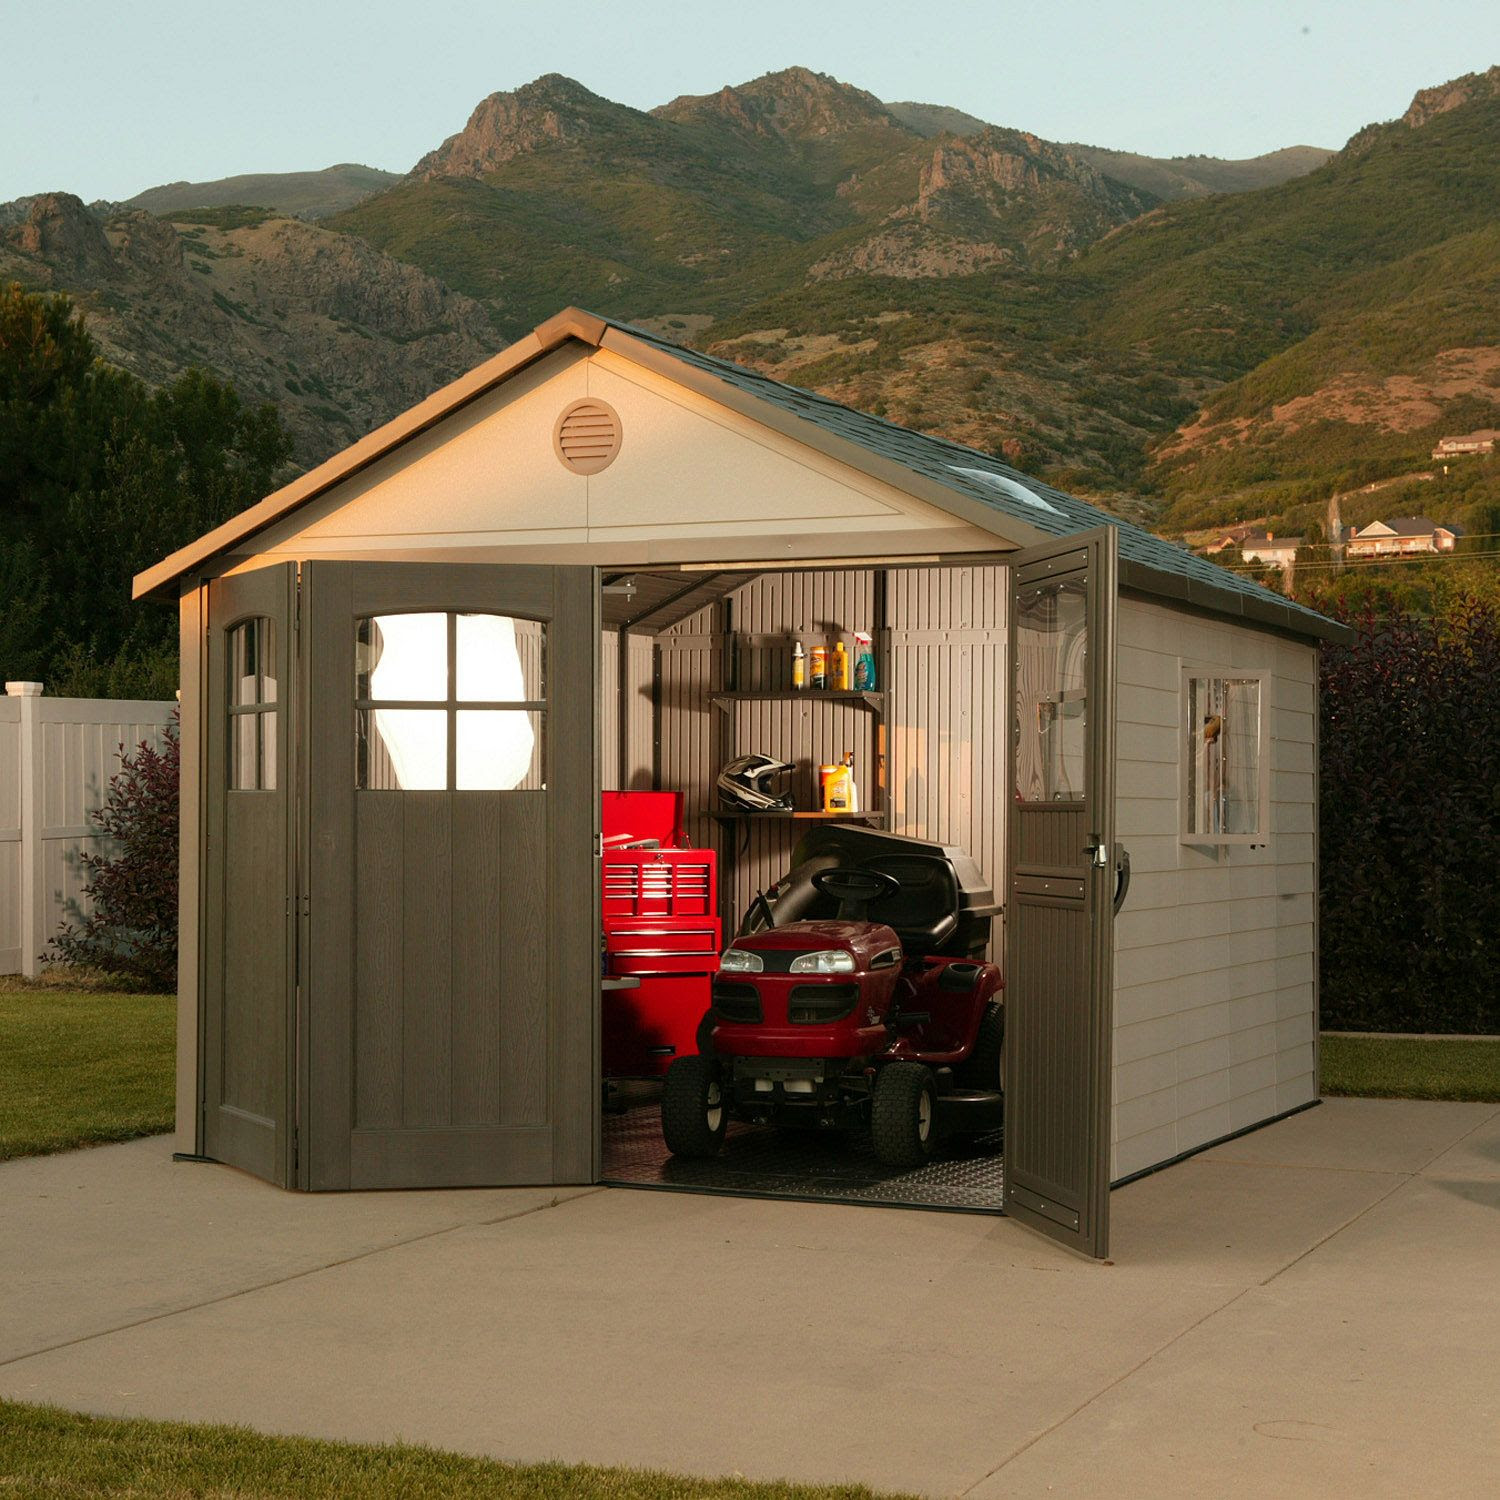 Lifetime 174 11 X 11 Resin Shed Reviews Lifetime Outdoor